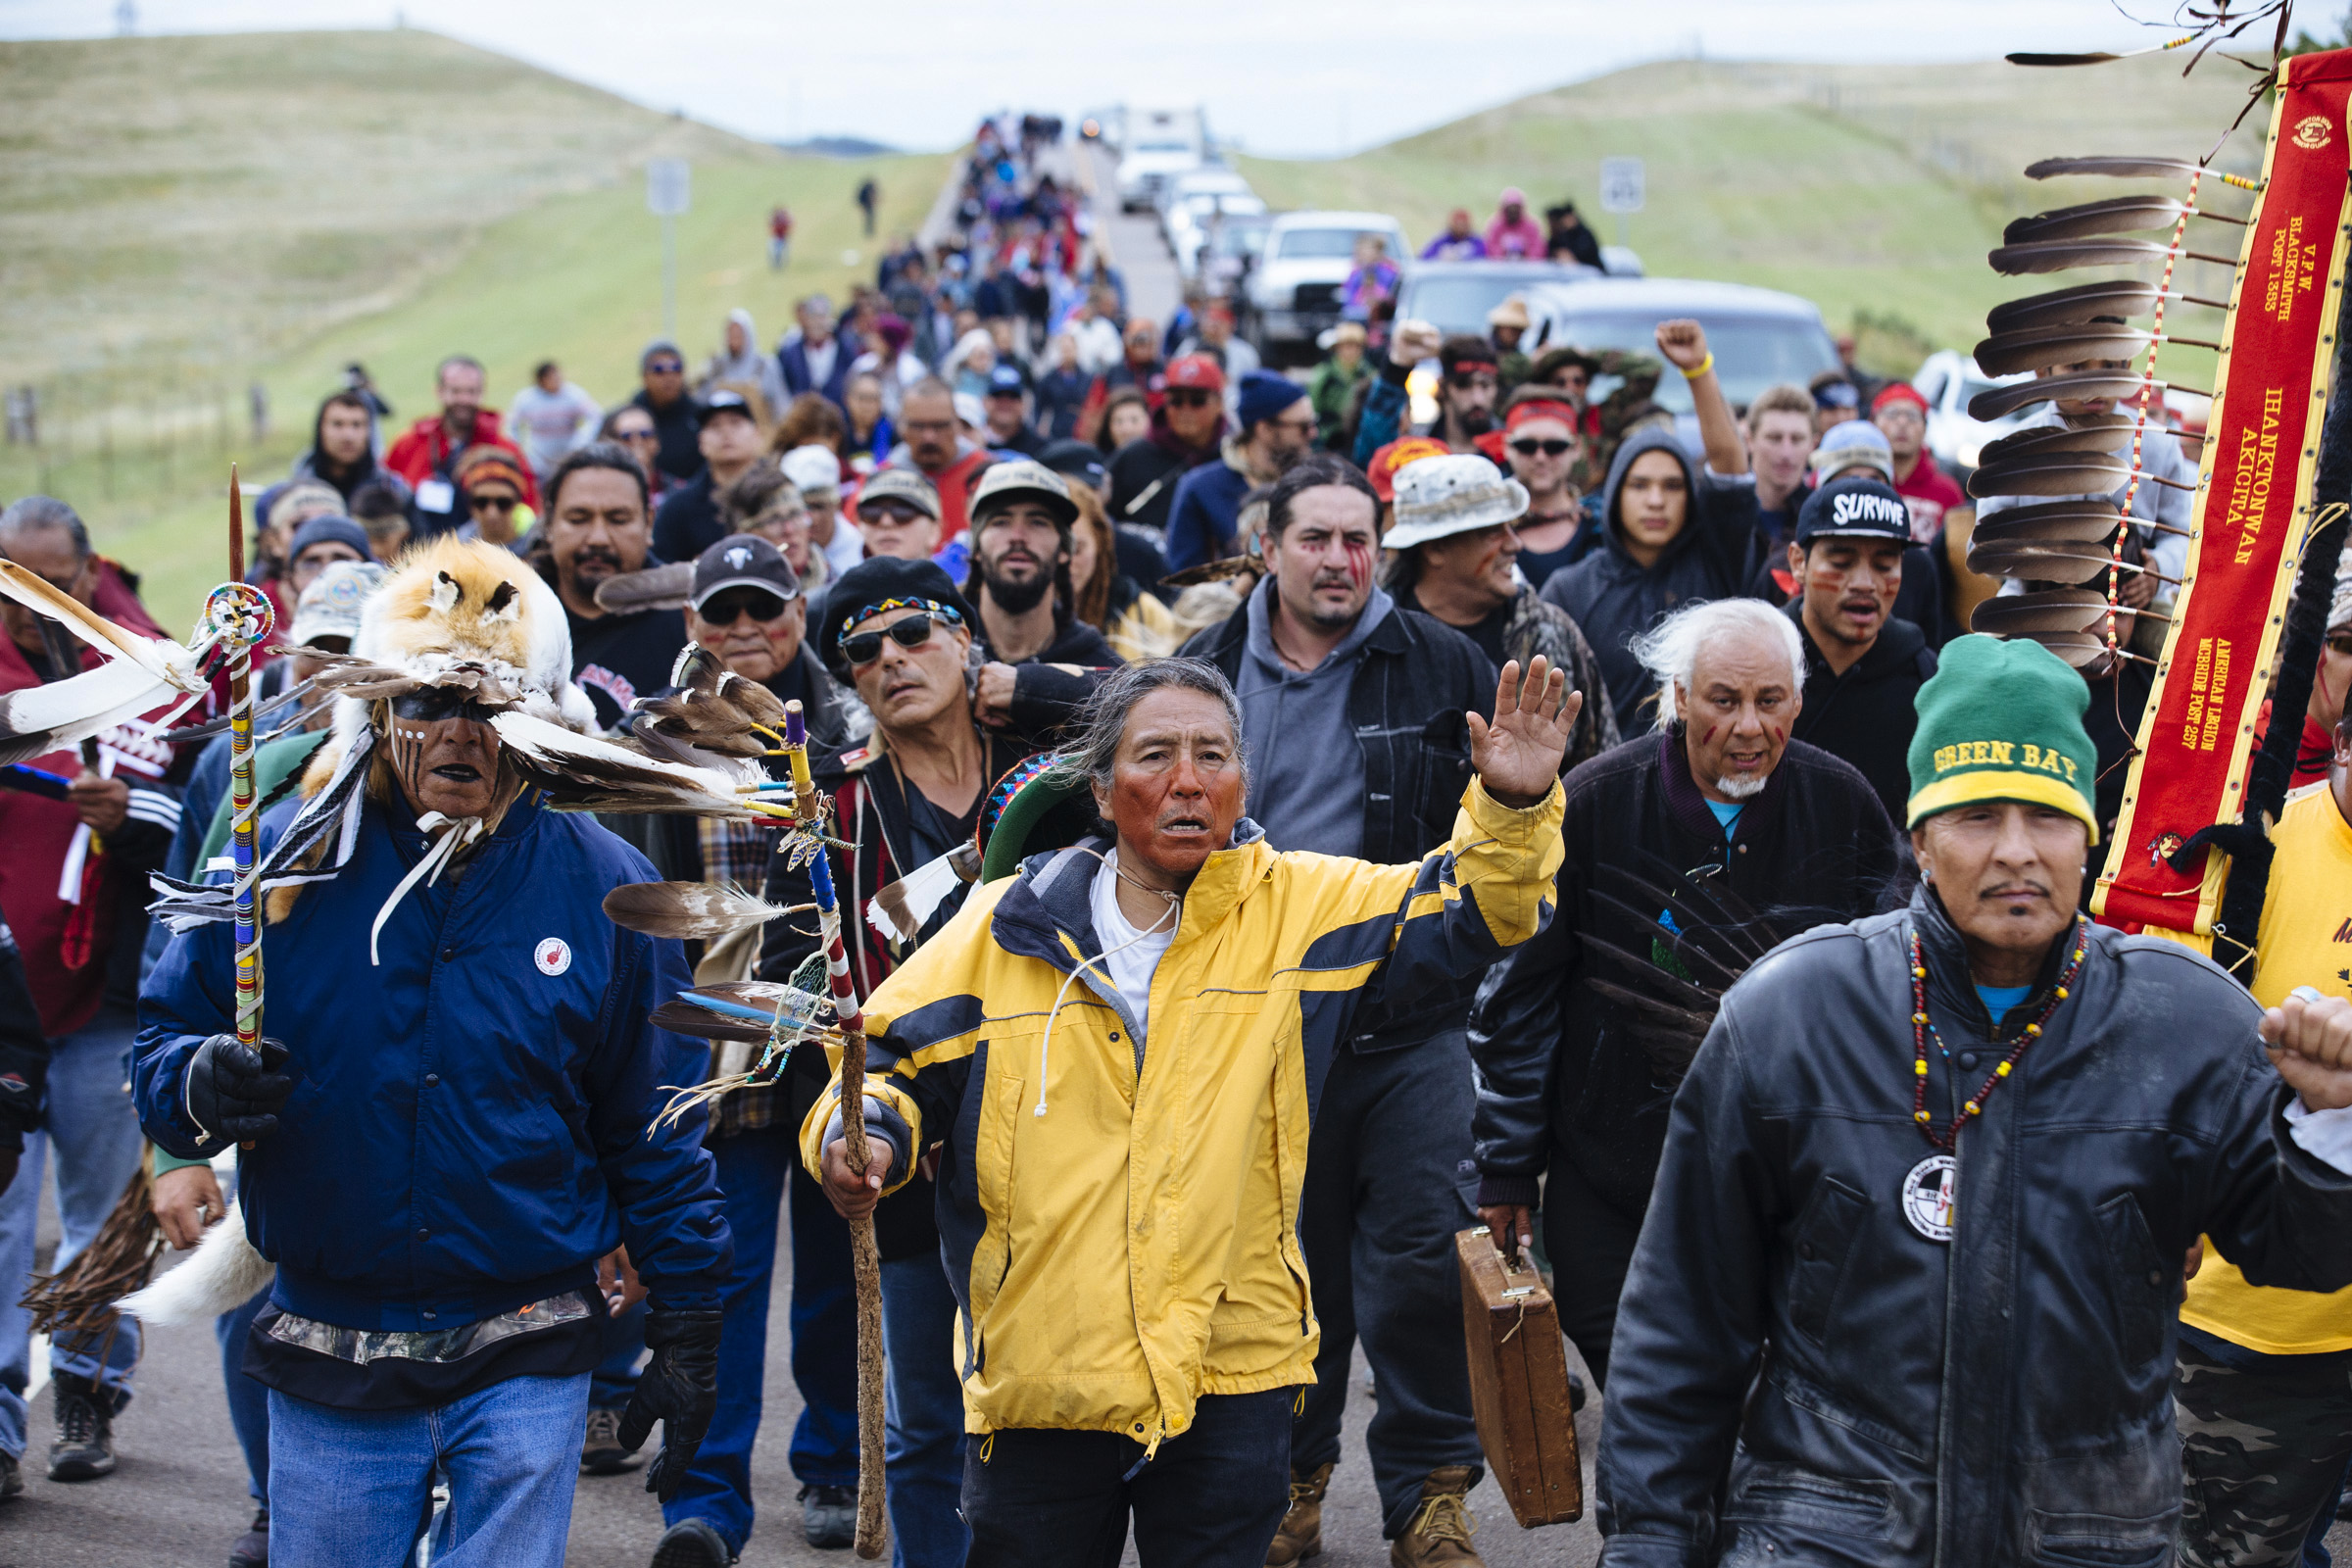 Stanley Perry (center), 53, from the Navajo Nation at the front of a protest march along Highway 1806 with over 700 water protectors on Friday, Sept. 9, 2016. The march covered the 2 miles between the Oceti Sakowin Camp and a sacred burial site, which is slated to be destroyed by the Dakota Access Pipeline. (Photo by Angus Mordant/Groundtruth)